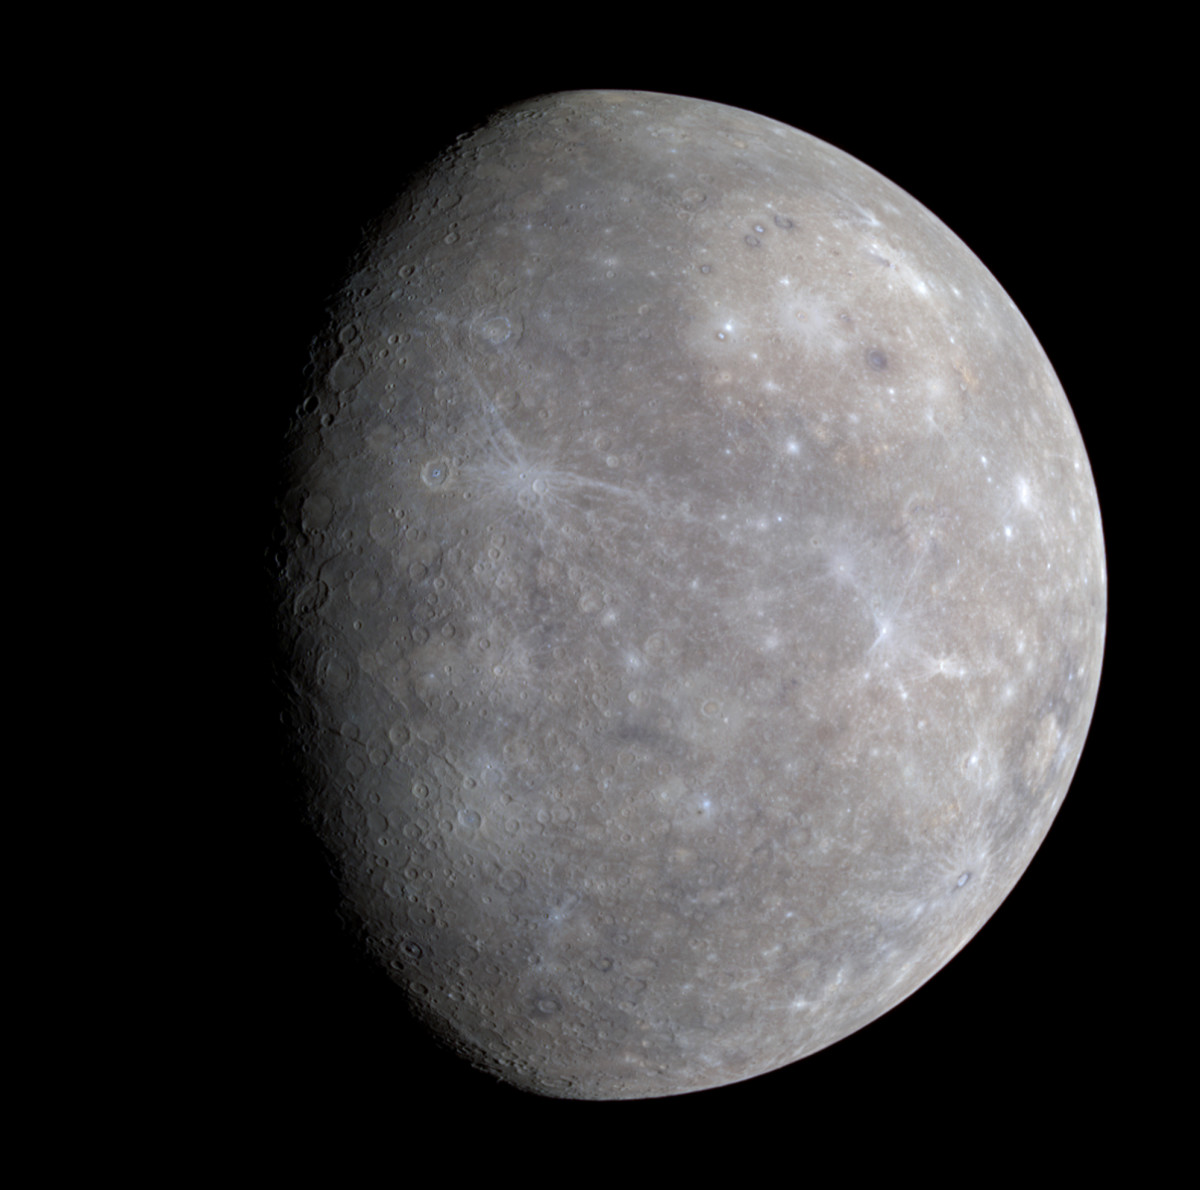 Mercury: a day lasting longer than its year